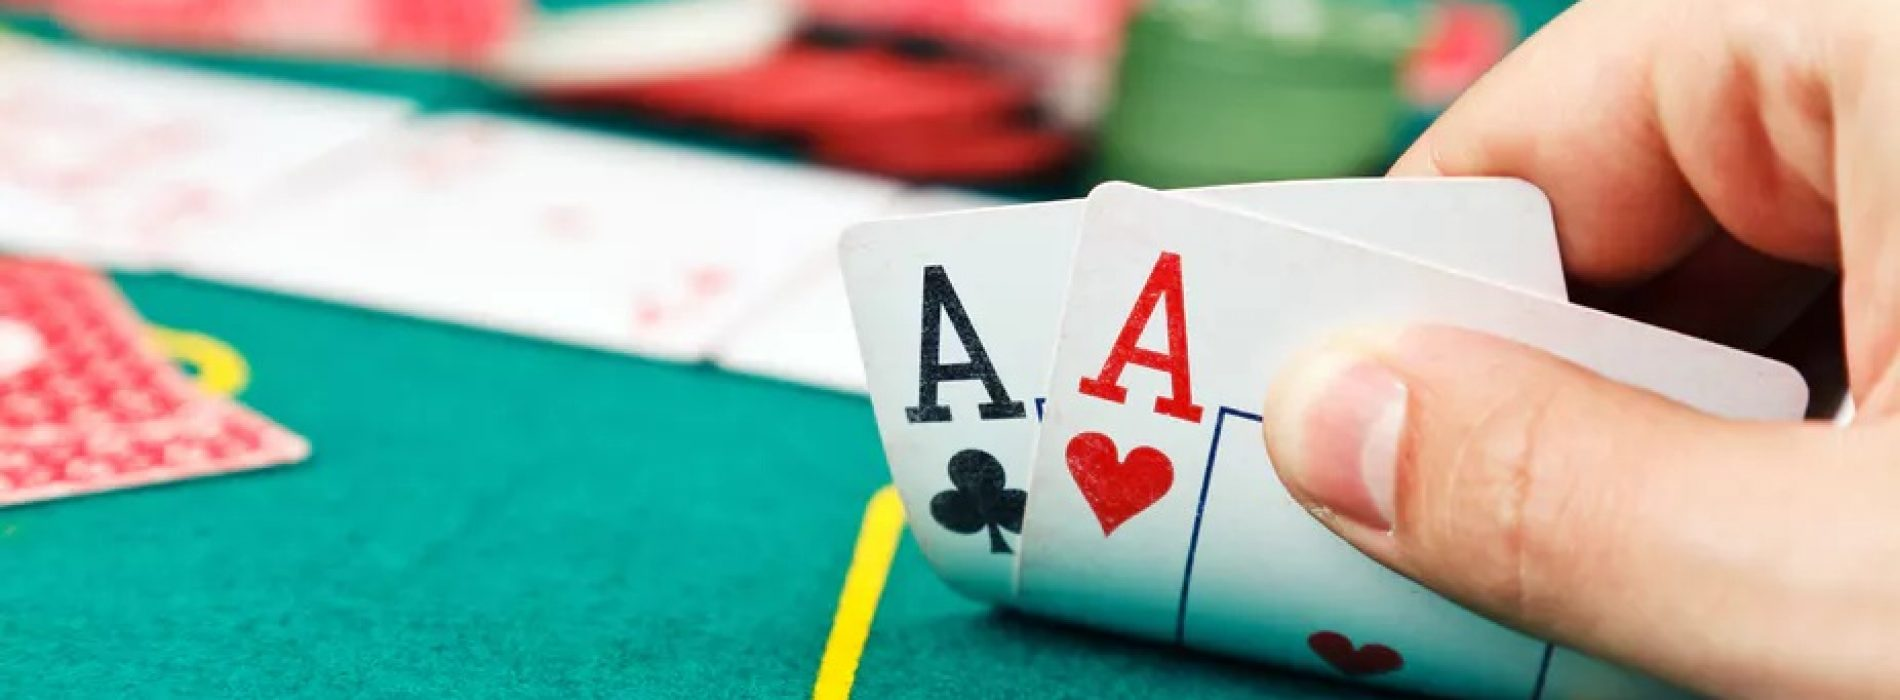 Benefits of playing free online poker games: